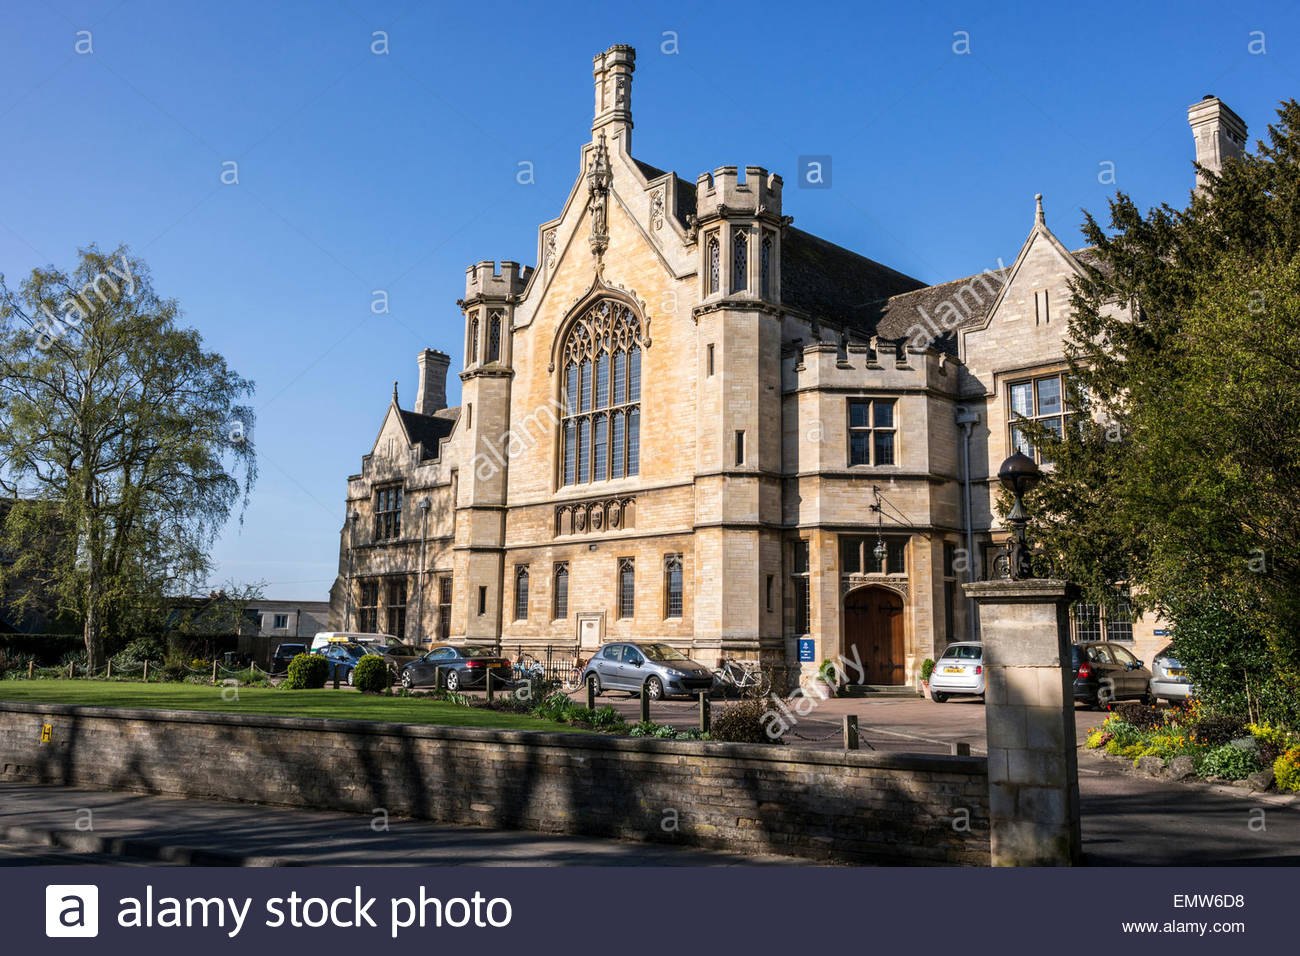 The Great Hall, Oundle School, Oundle, Northamptonshire, UK - Stock Image